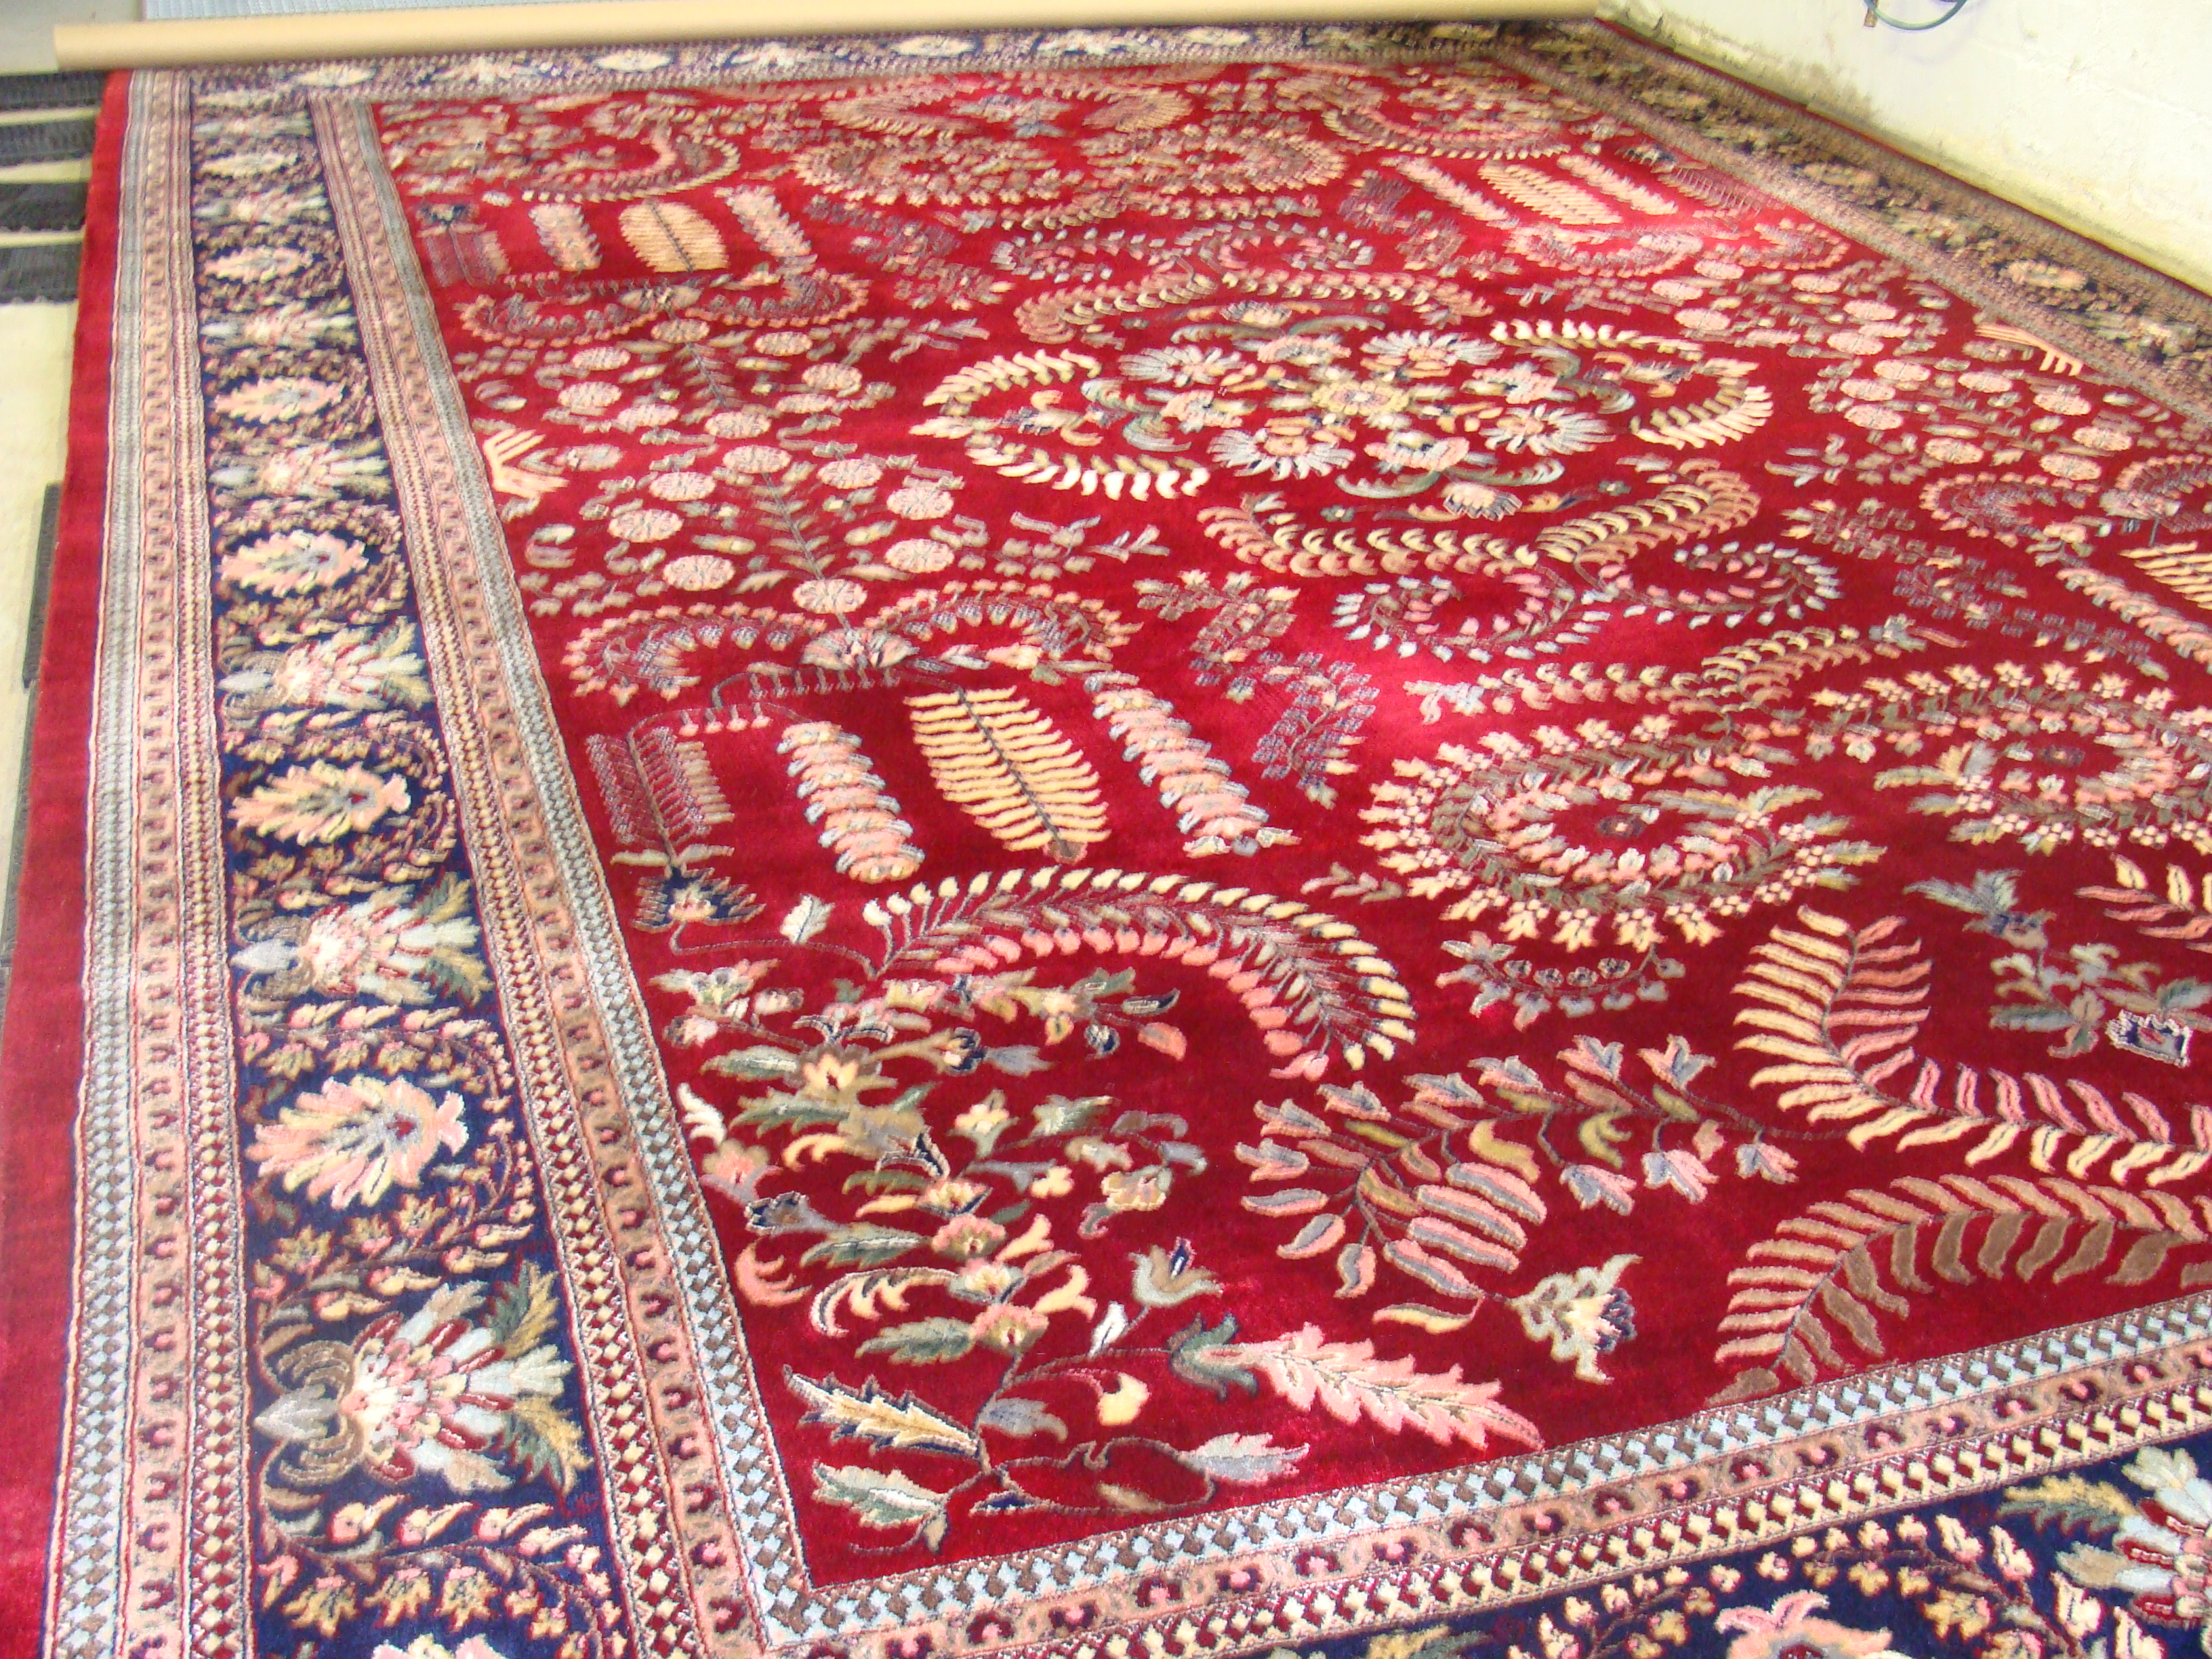 Why Area Rugs are not Cleaned in the Home.